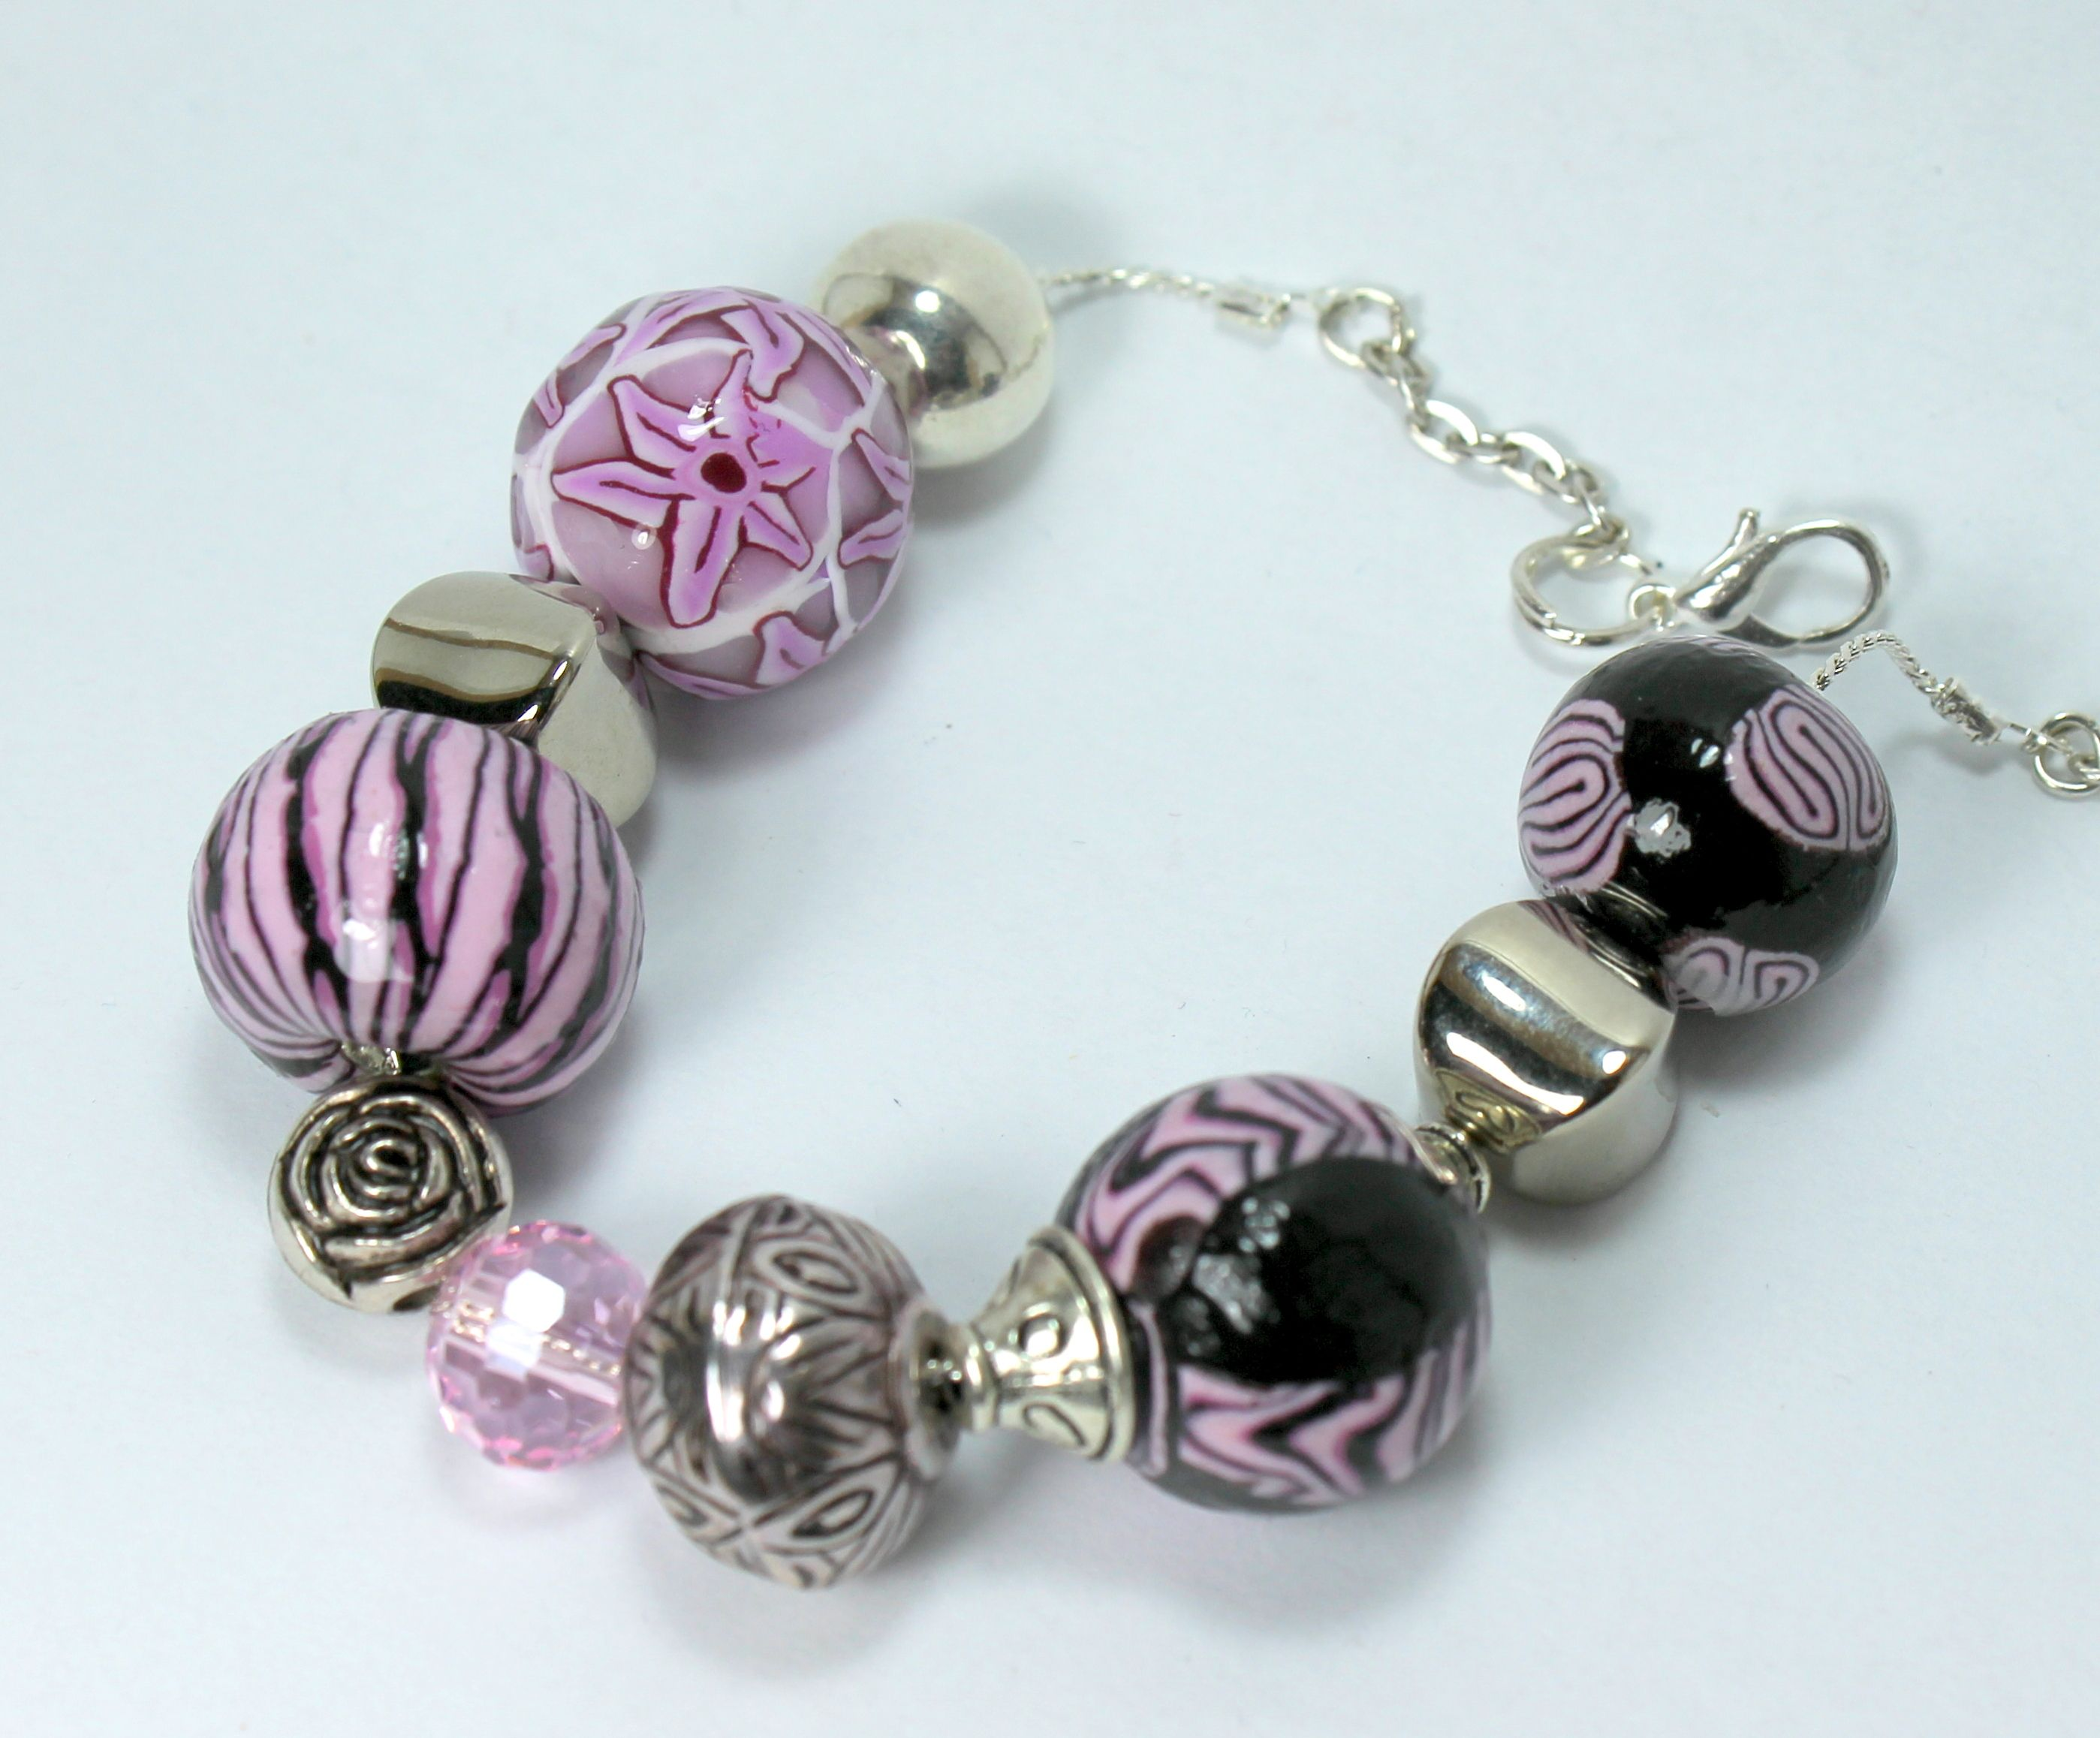 Pandora style bracelet in shades of pink , made with beads handmade in polymer clay and resin , swarovski crystal and nickel free metal components . The bracelet is adjustable with a lobster clasp closure . All material is non-allergenic . one piece